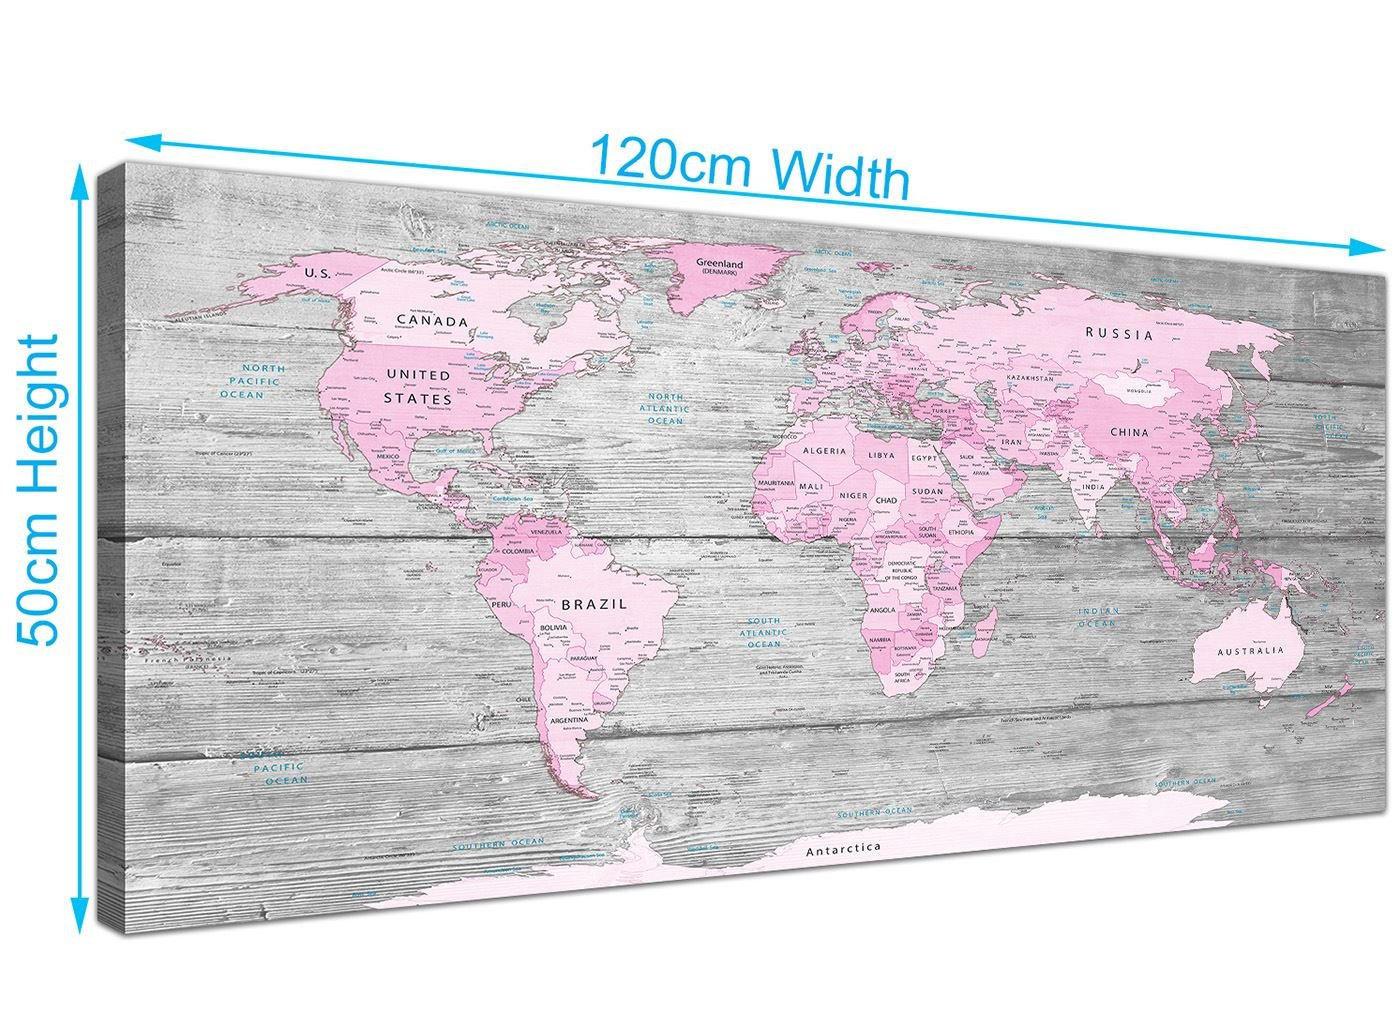 Modern Map Of The World.Wallfillers Large Pink Grey Map Of World Atlas Canvas Wall Art Print Maps Modern 120cm Wide 1302